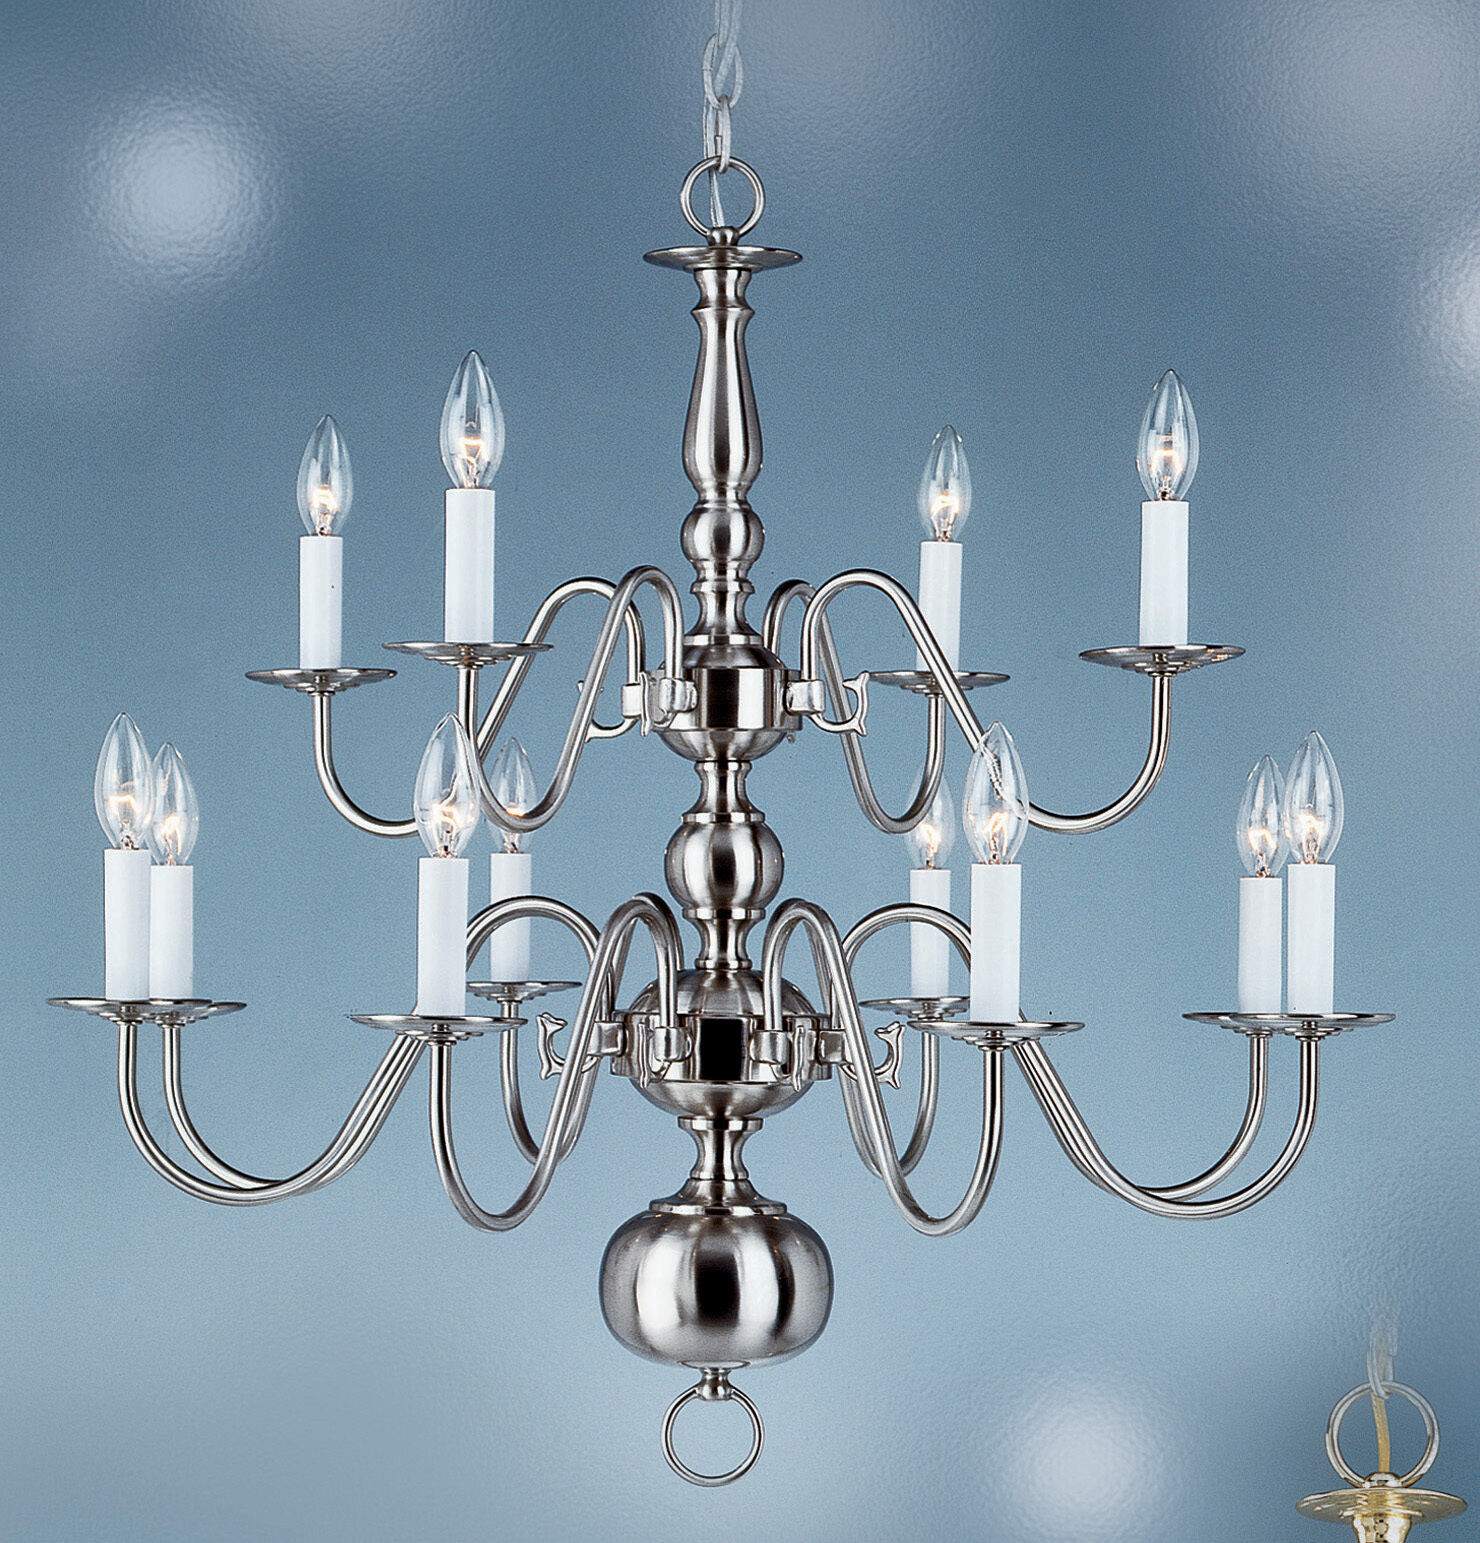 Williamsburg chandelier 12 lights brushed nickel 8140 bn ebay picture 1 of 1 arubaitofo Choice Image